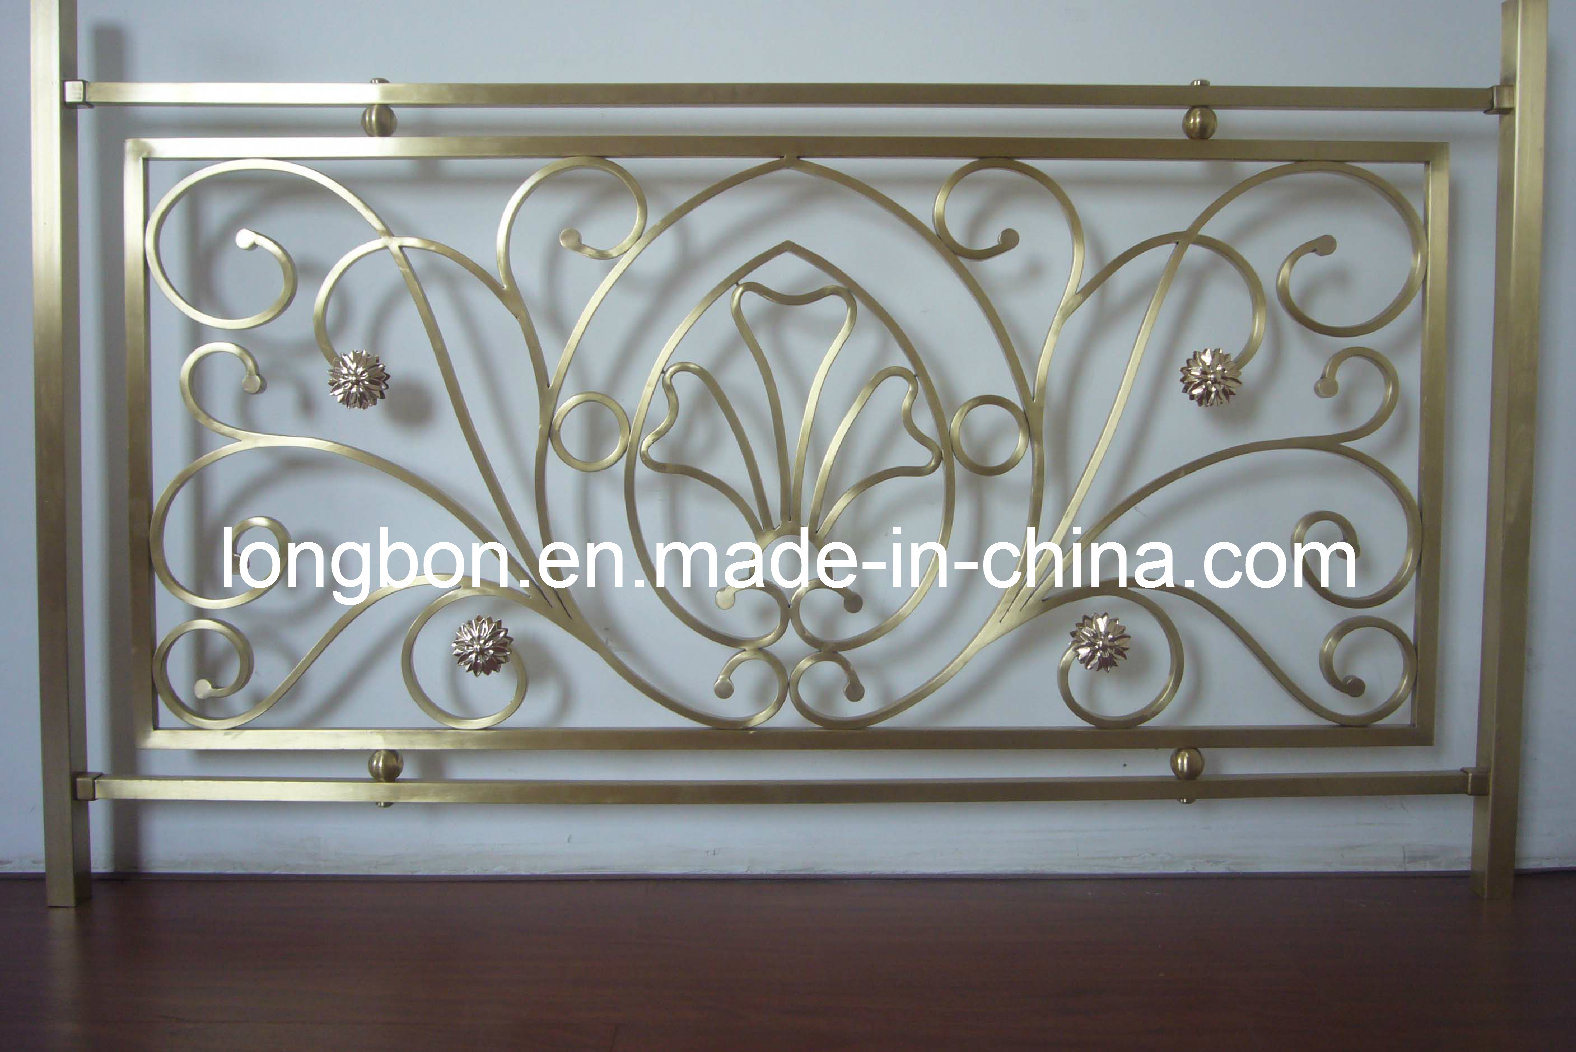 Designs for Steel Balcony Fence (LB-B-F-0011) - China Balcony ...